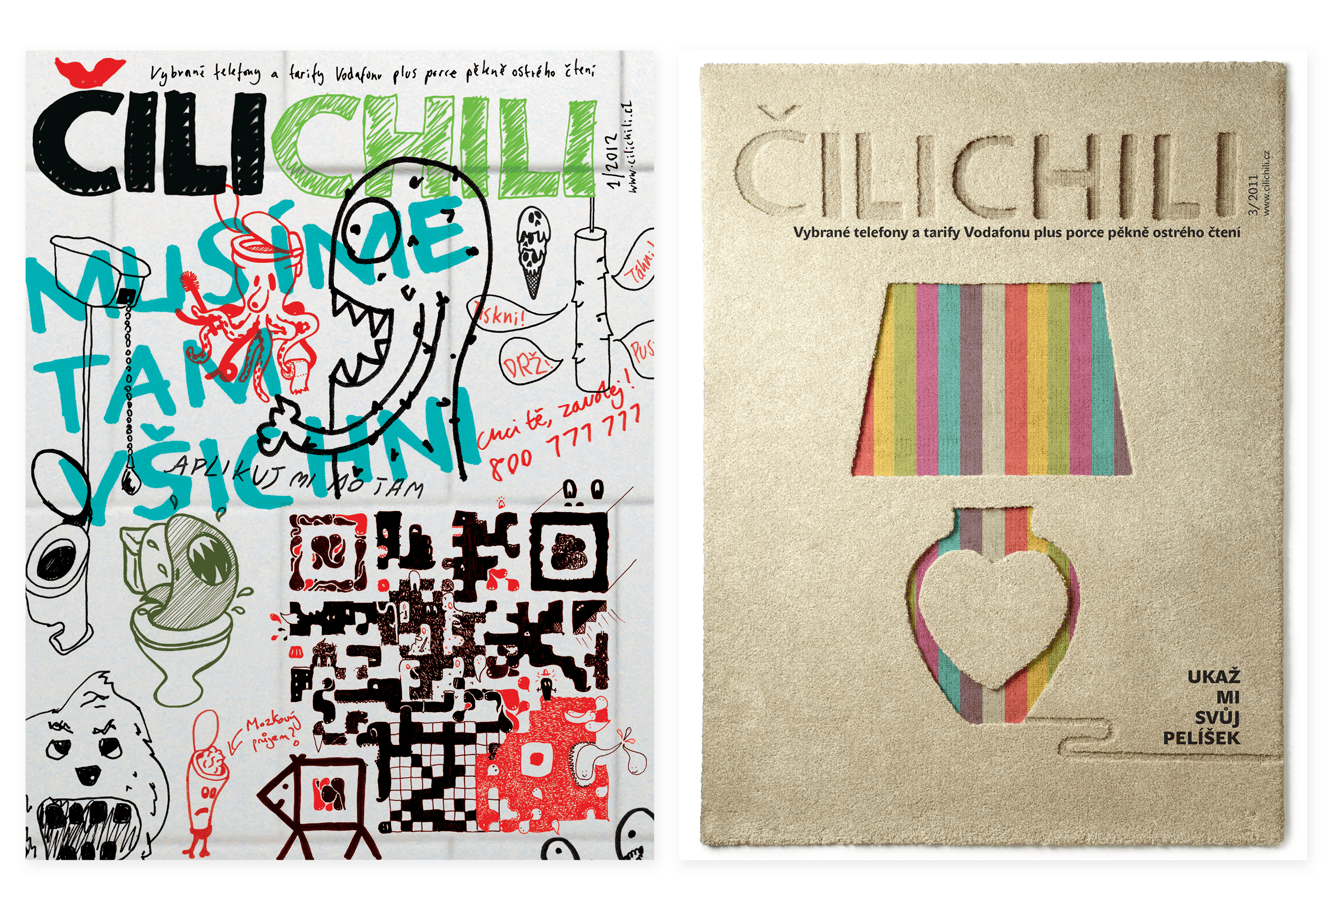 Cilichili Magazine Cover Designs By &&& Creative: Toilet Issue And Interiors Issue